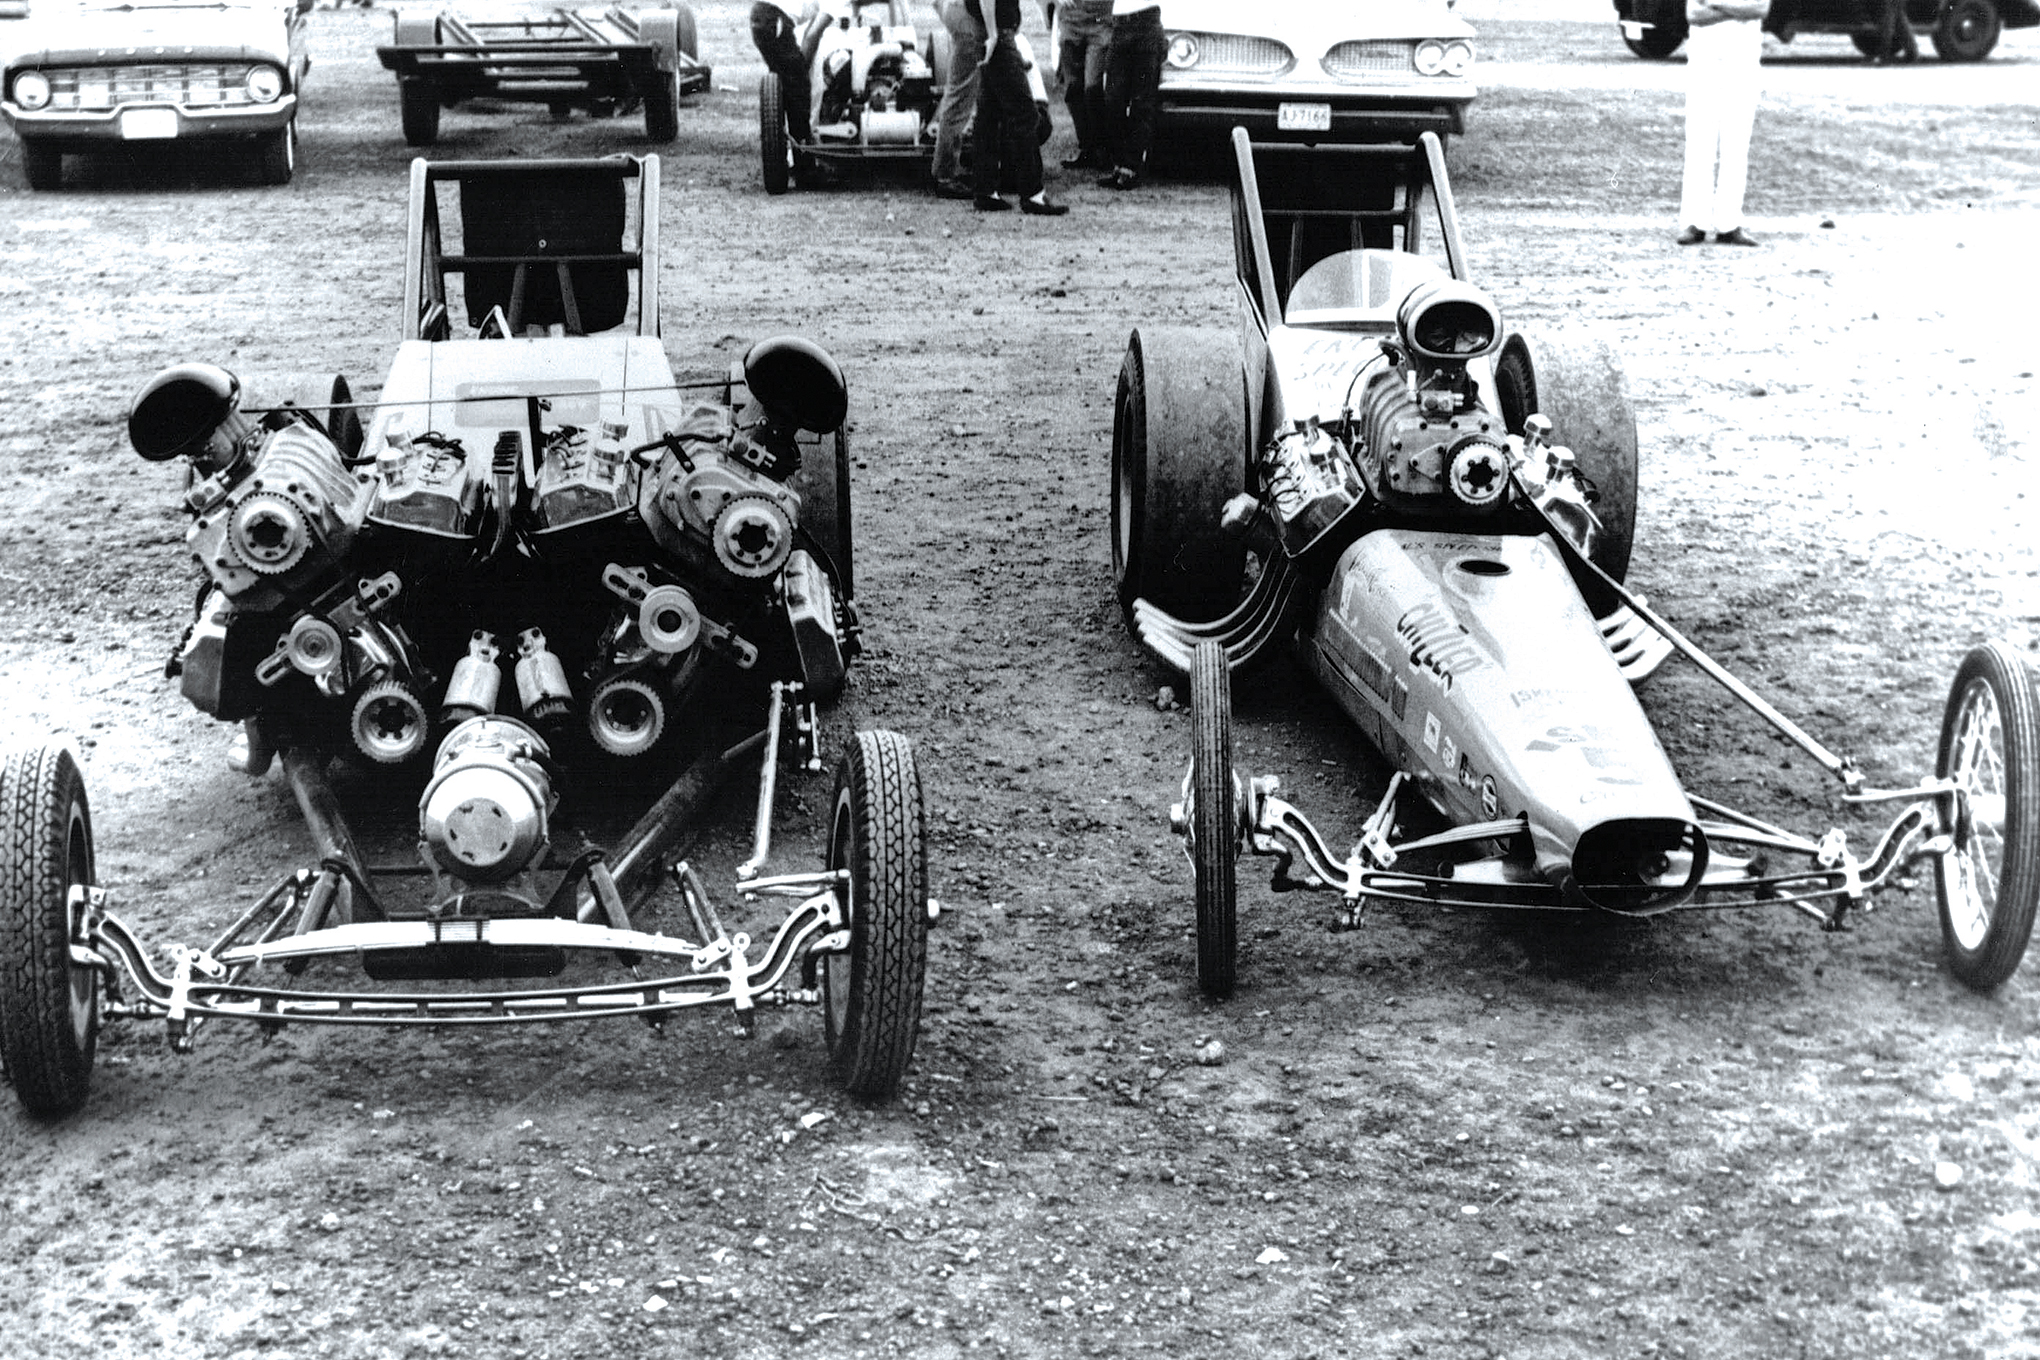 Chris Karamesines tried Chizler I, a short-wheelbase, opposed-engine car. Here, it's in the Alton pits along with his 204-mph single-engine digger, Chizler II. According to Karamesines in a 1999 interview, the car just had too much power and they were never able to make it hook. The engines and parts of the drivetrain sat in The Greek's Chicago shop for almost 40 years before recently undergoing restoration with the help of Dale Armstrong.